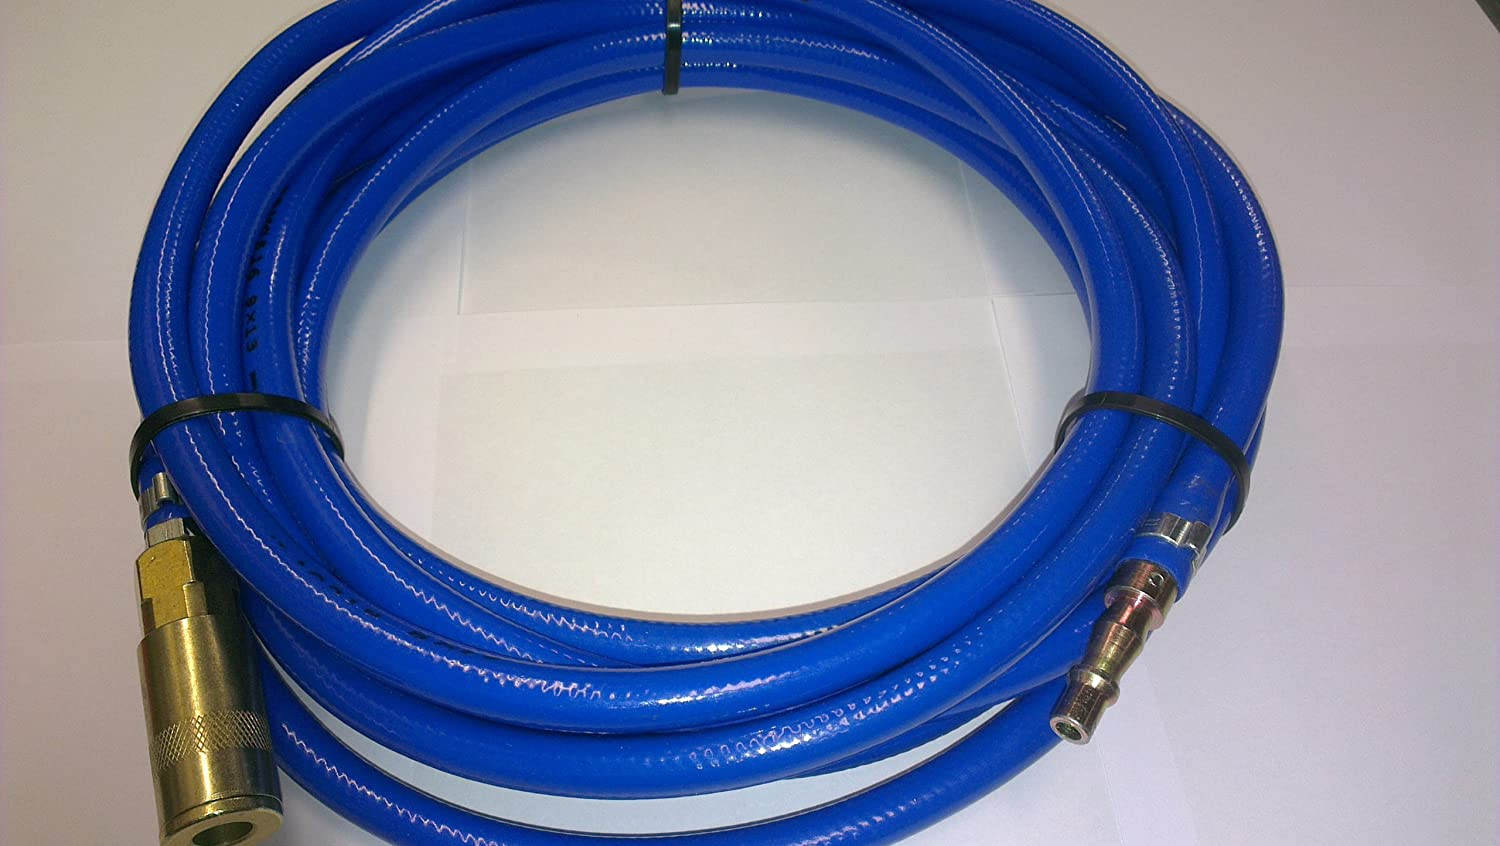 Air Line , Air Hose High Quality Double Skinned Braided Reinforced 10m x 8mm Bore Thorcraft